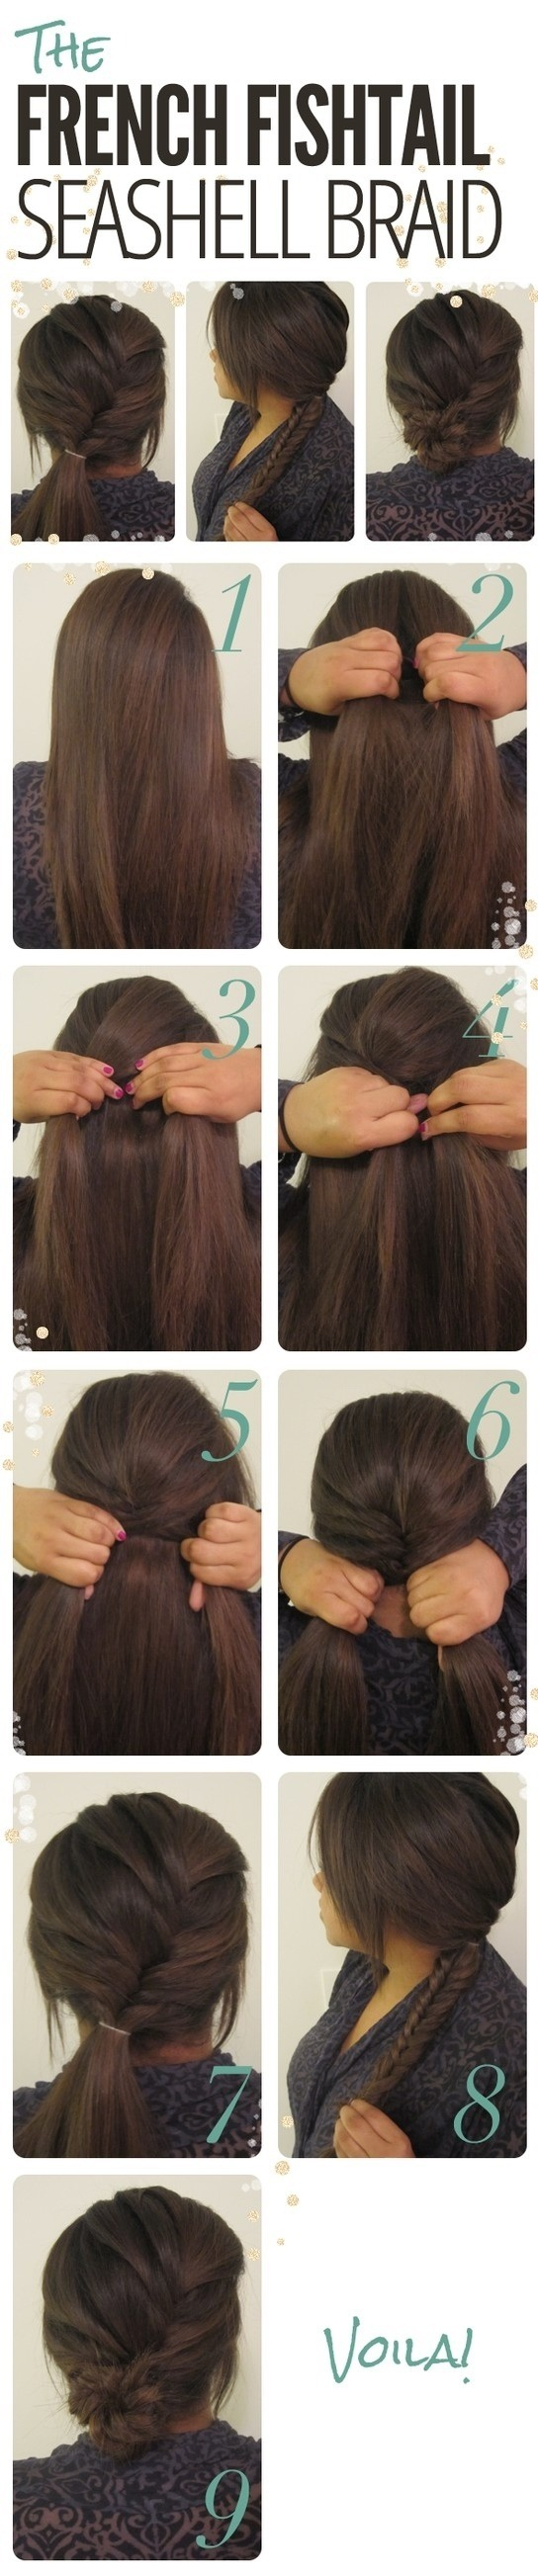 Hair Tutorial The French Fishtail Seashell Braid